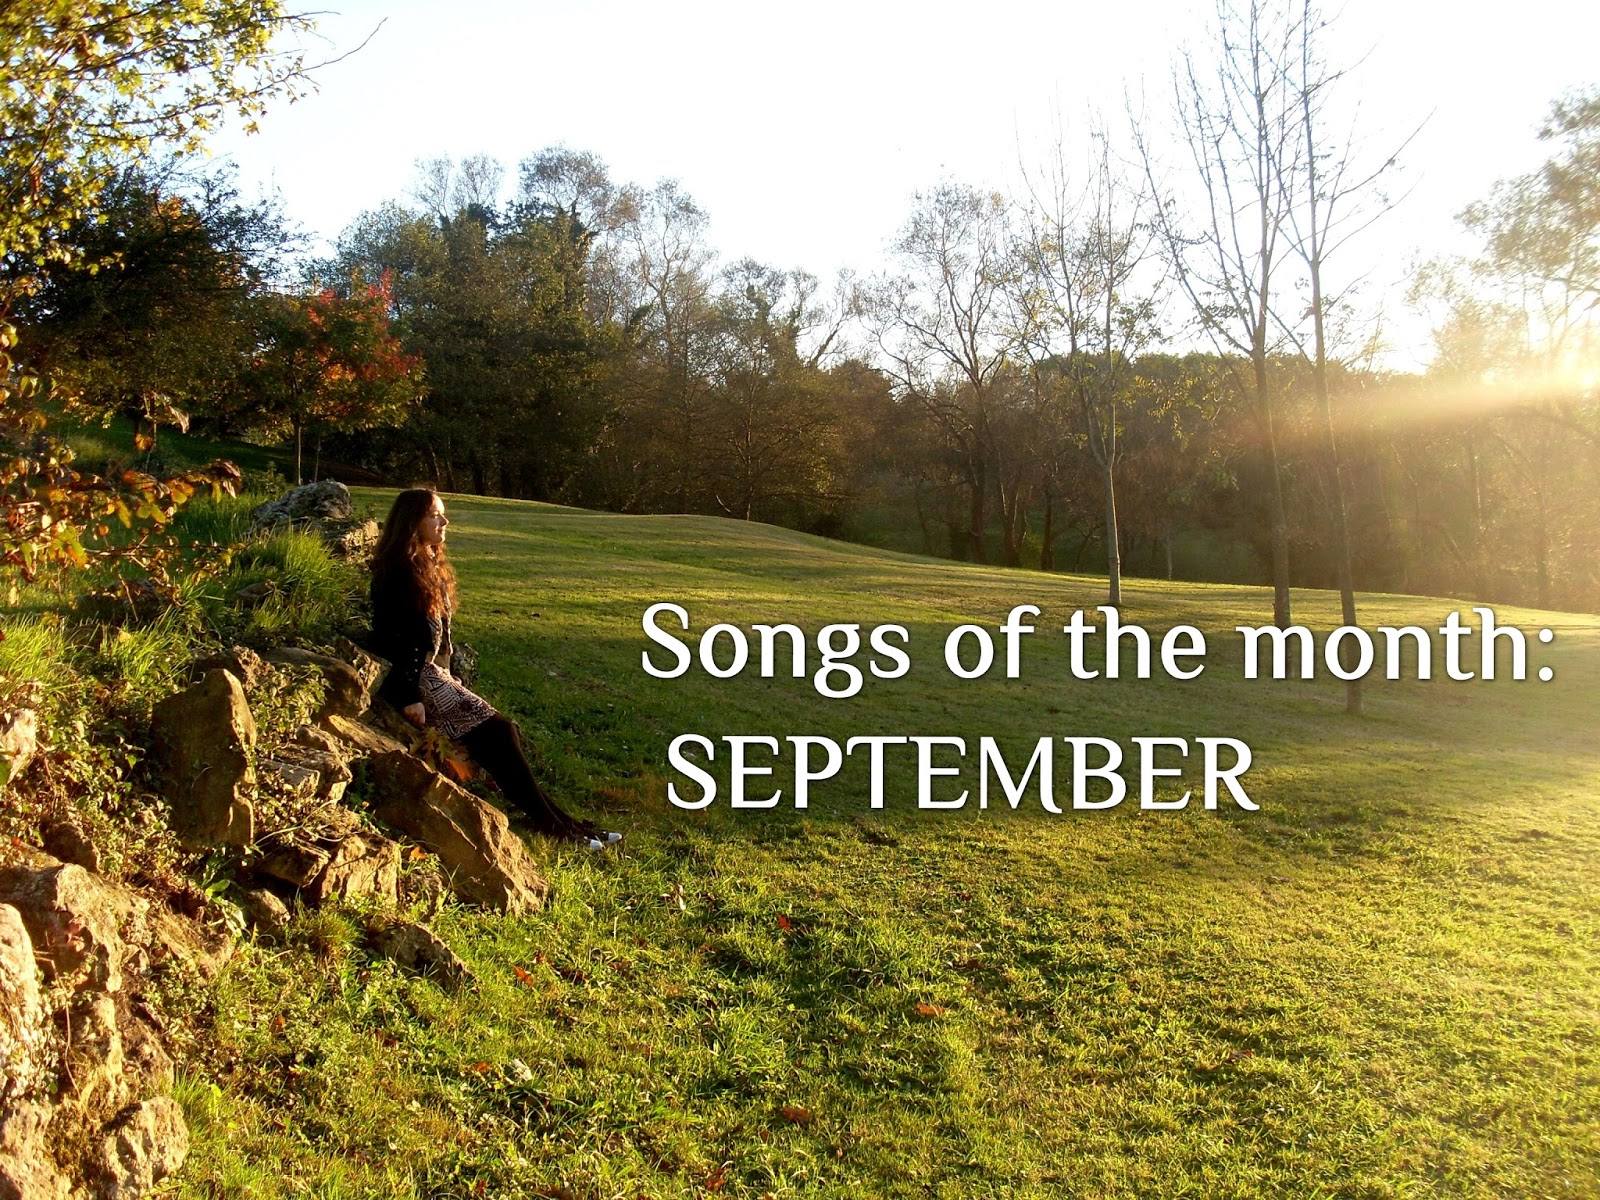 Songs of the month: September